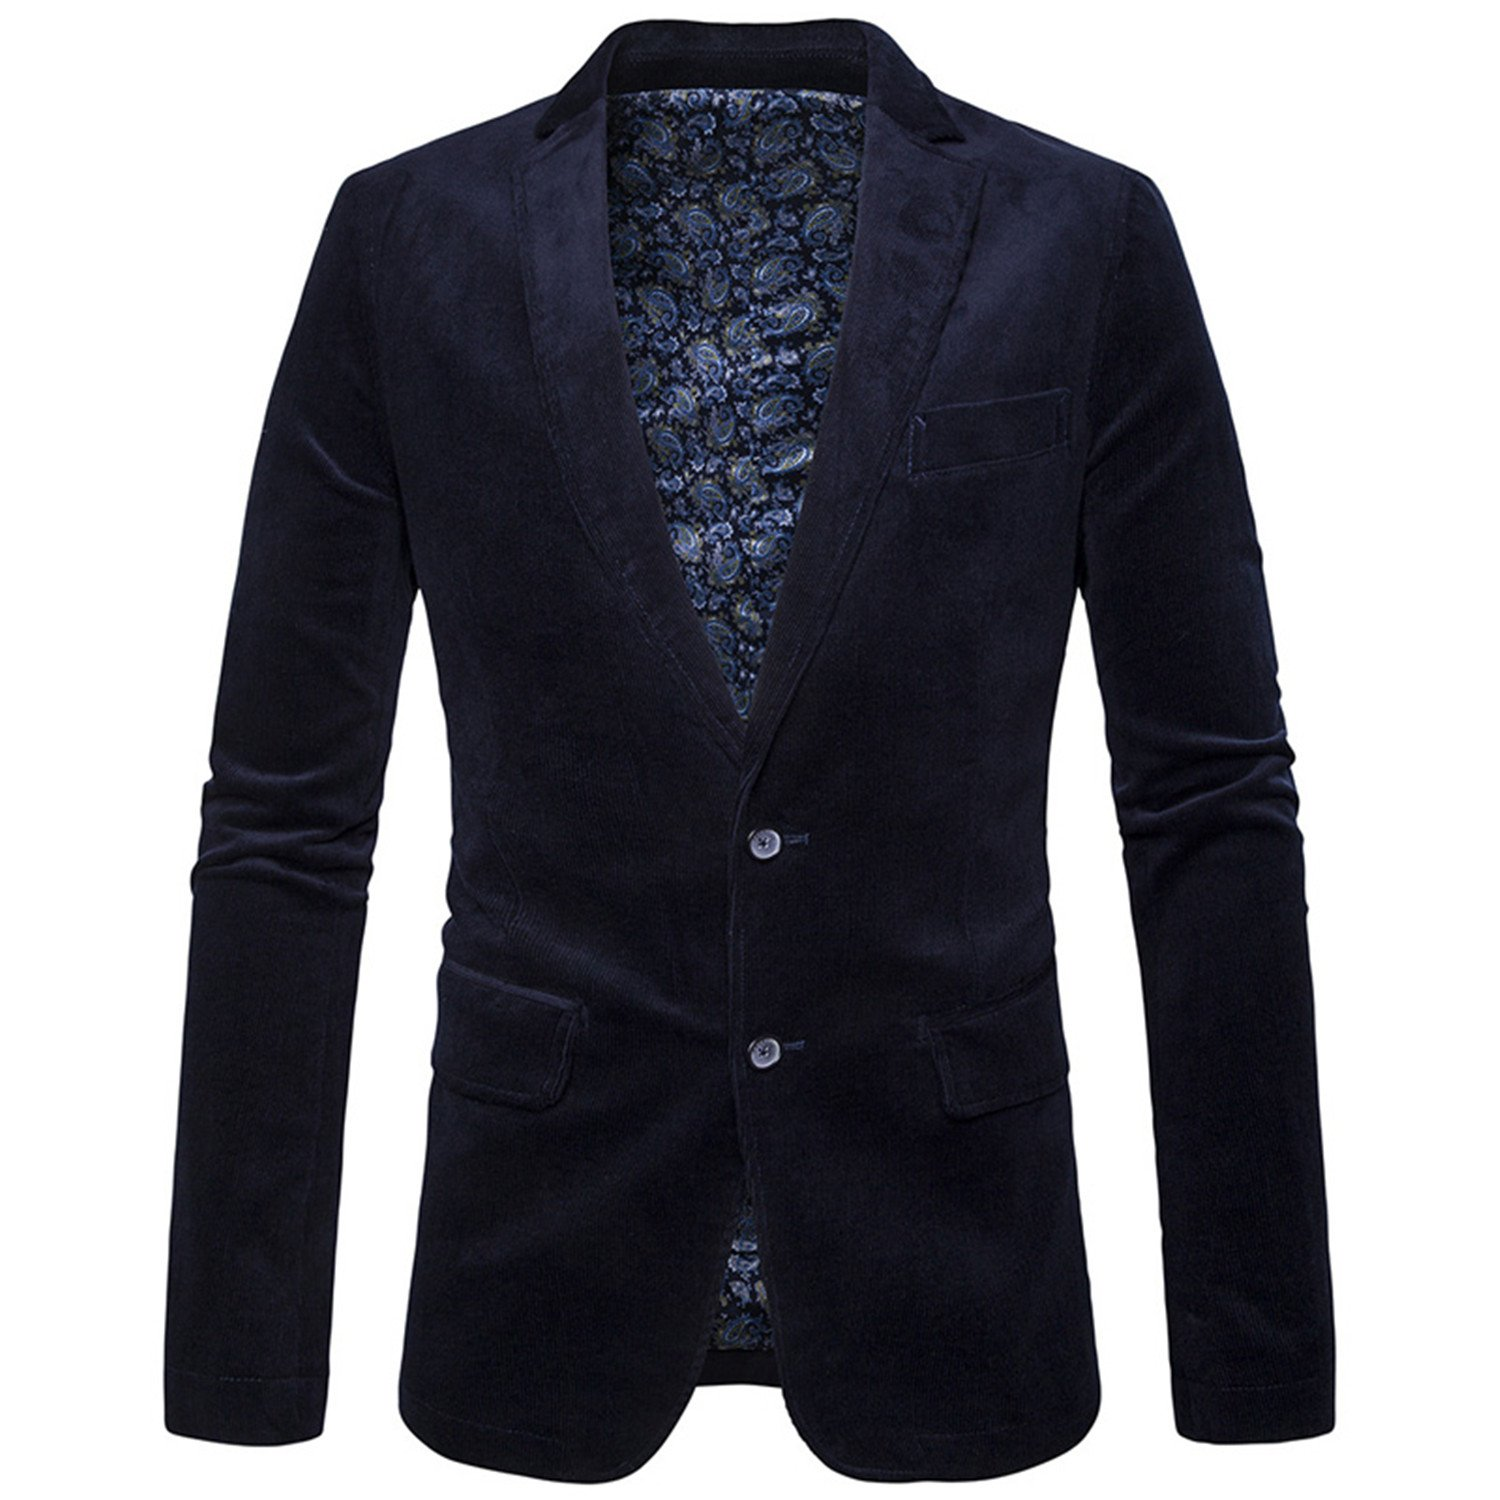 Single Breasted Two Button Corduroy Dress Suit Jacket Blazer 2018 Casual Party Business Work Men Blazers 3XL at Amazon Mens Clothing store: